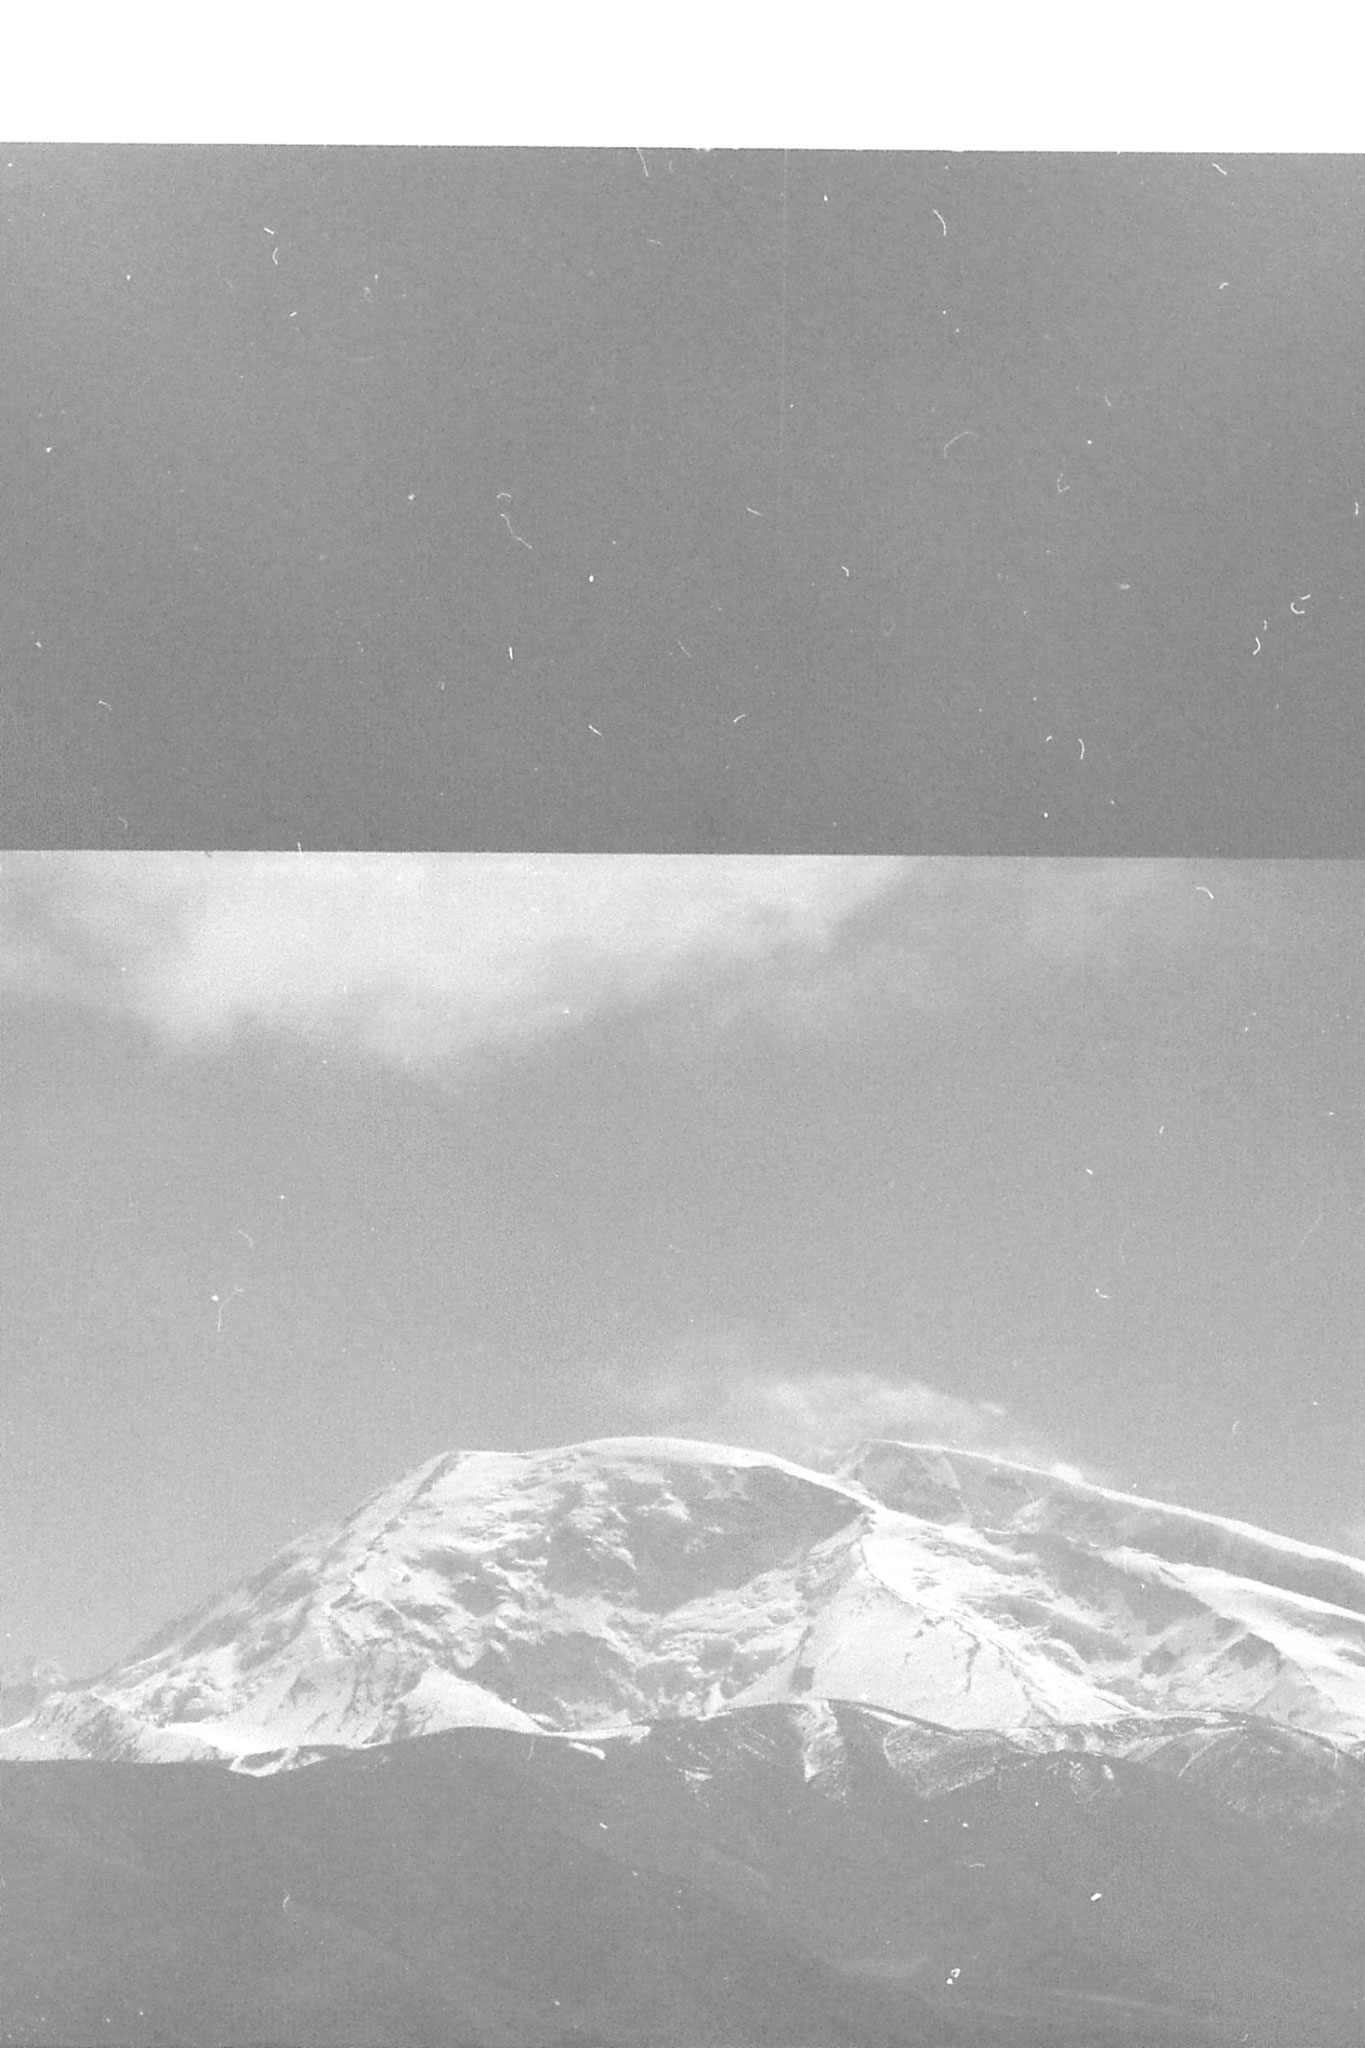 10/9/1989: 2: Lake Karakul